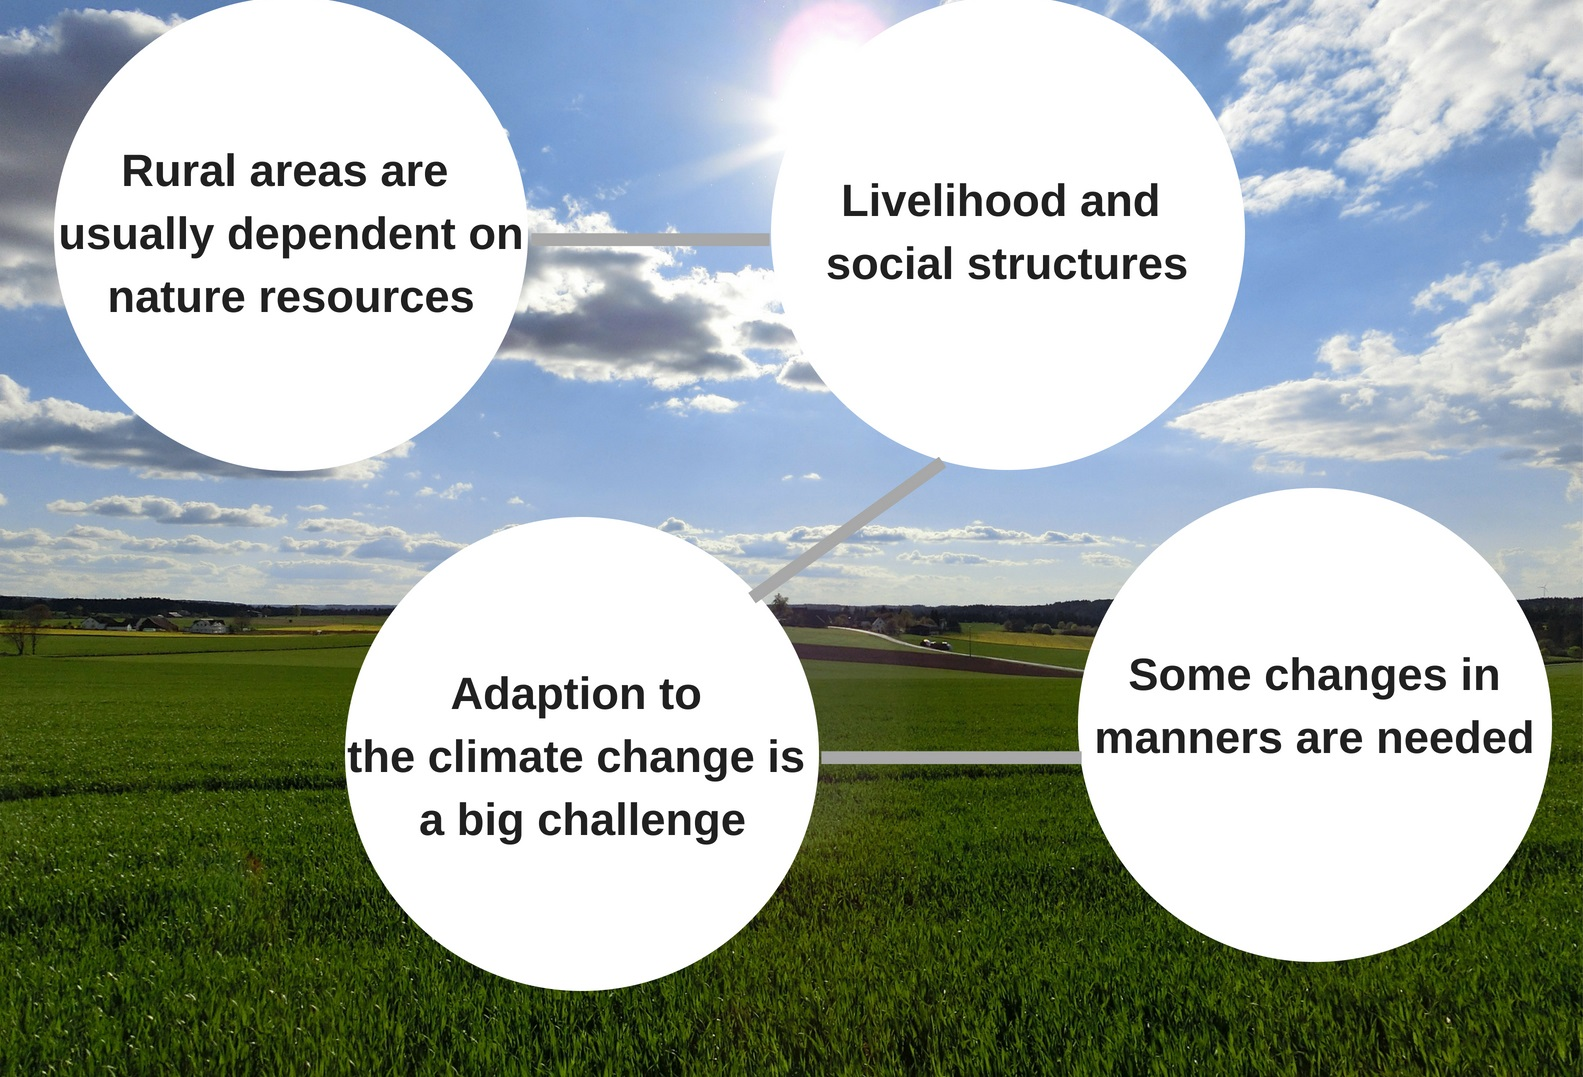 Climate change and rural areas